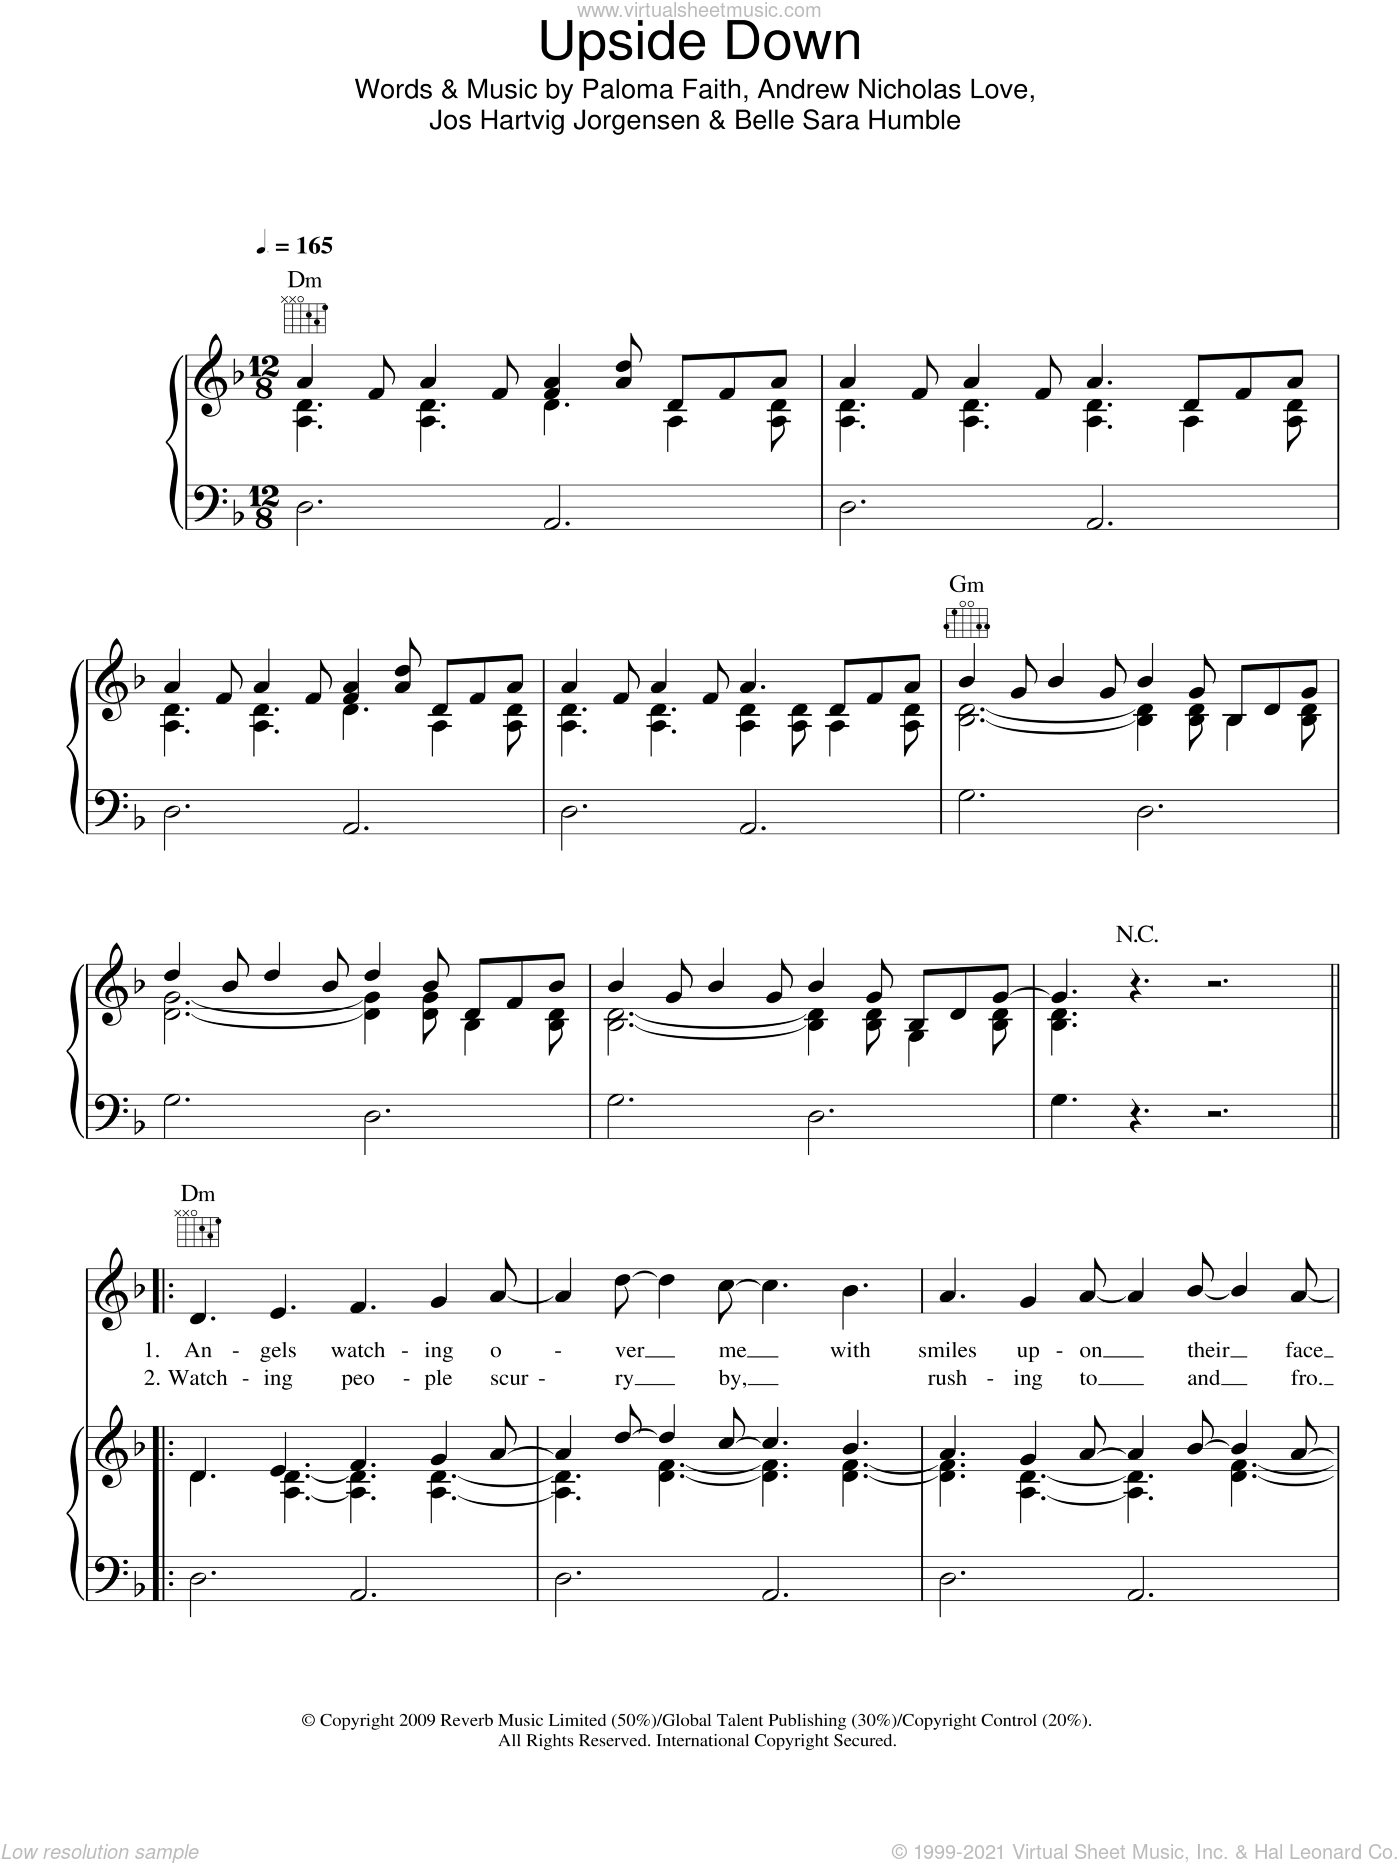 Upside Down sheet music for voice, piano or guitar by Jos Hartvig Jorgensen and Paloma Faith. Score Image Preview.